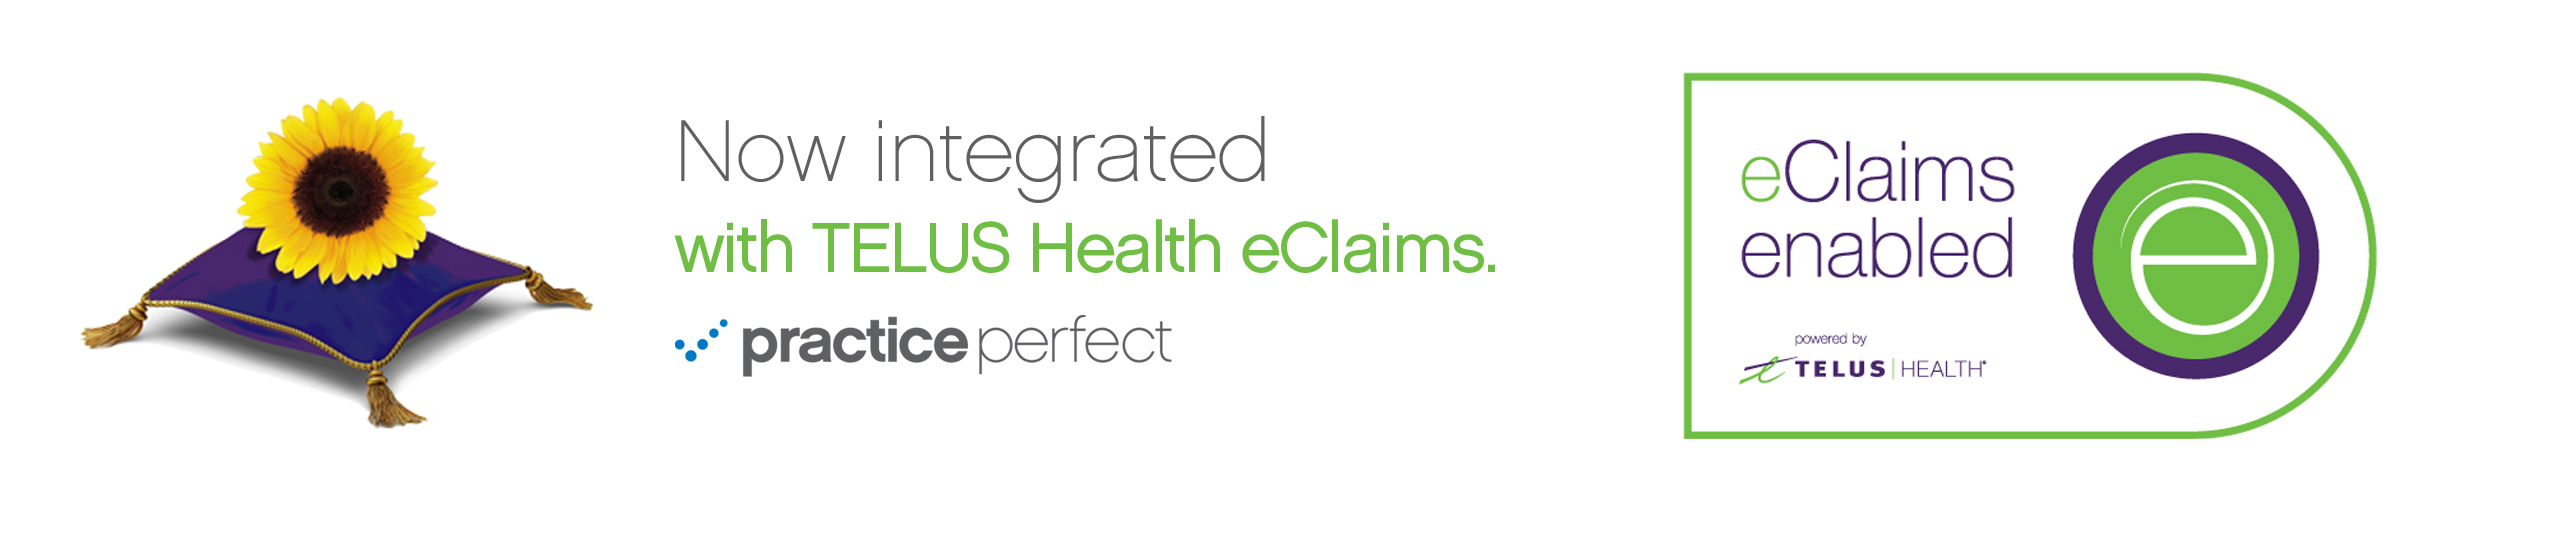 Telus-health-practice-perfect